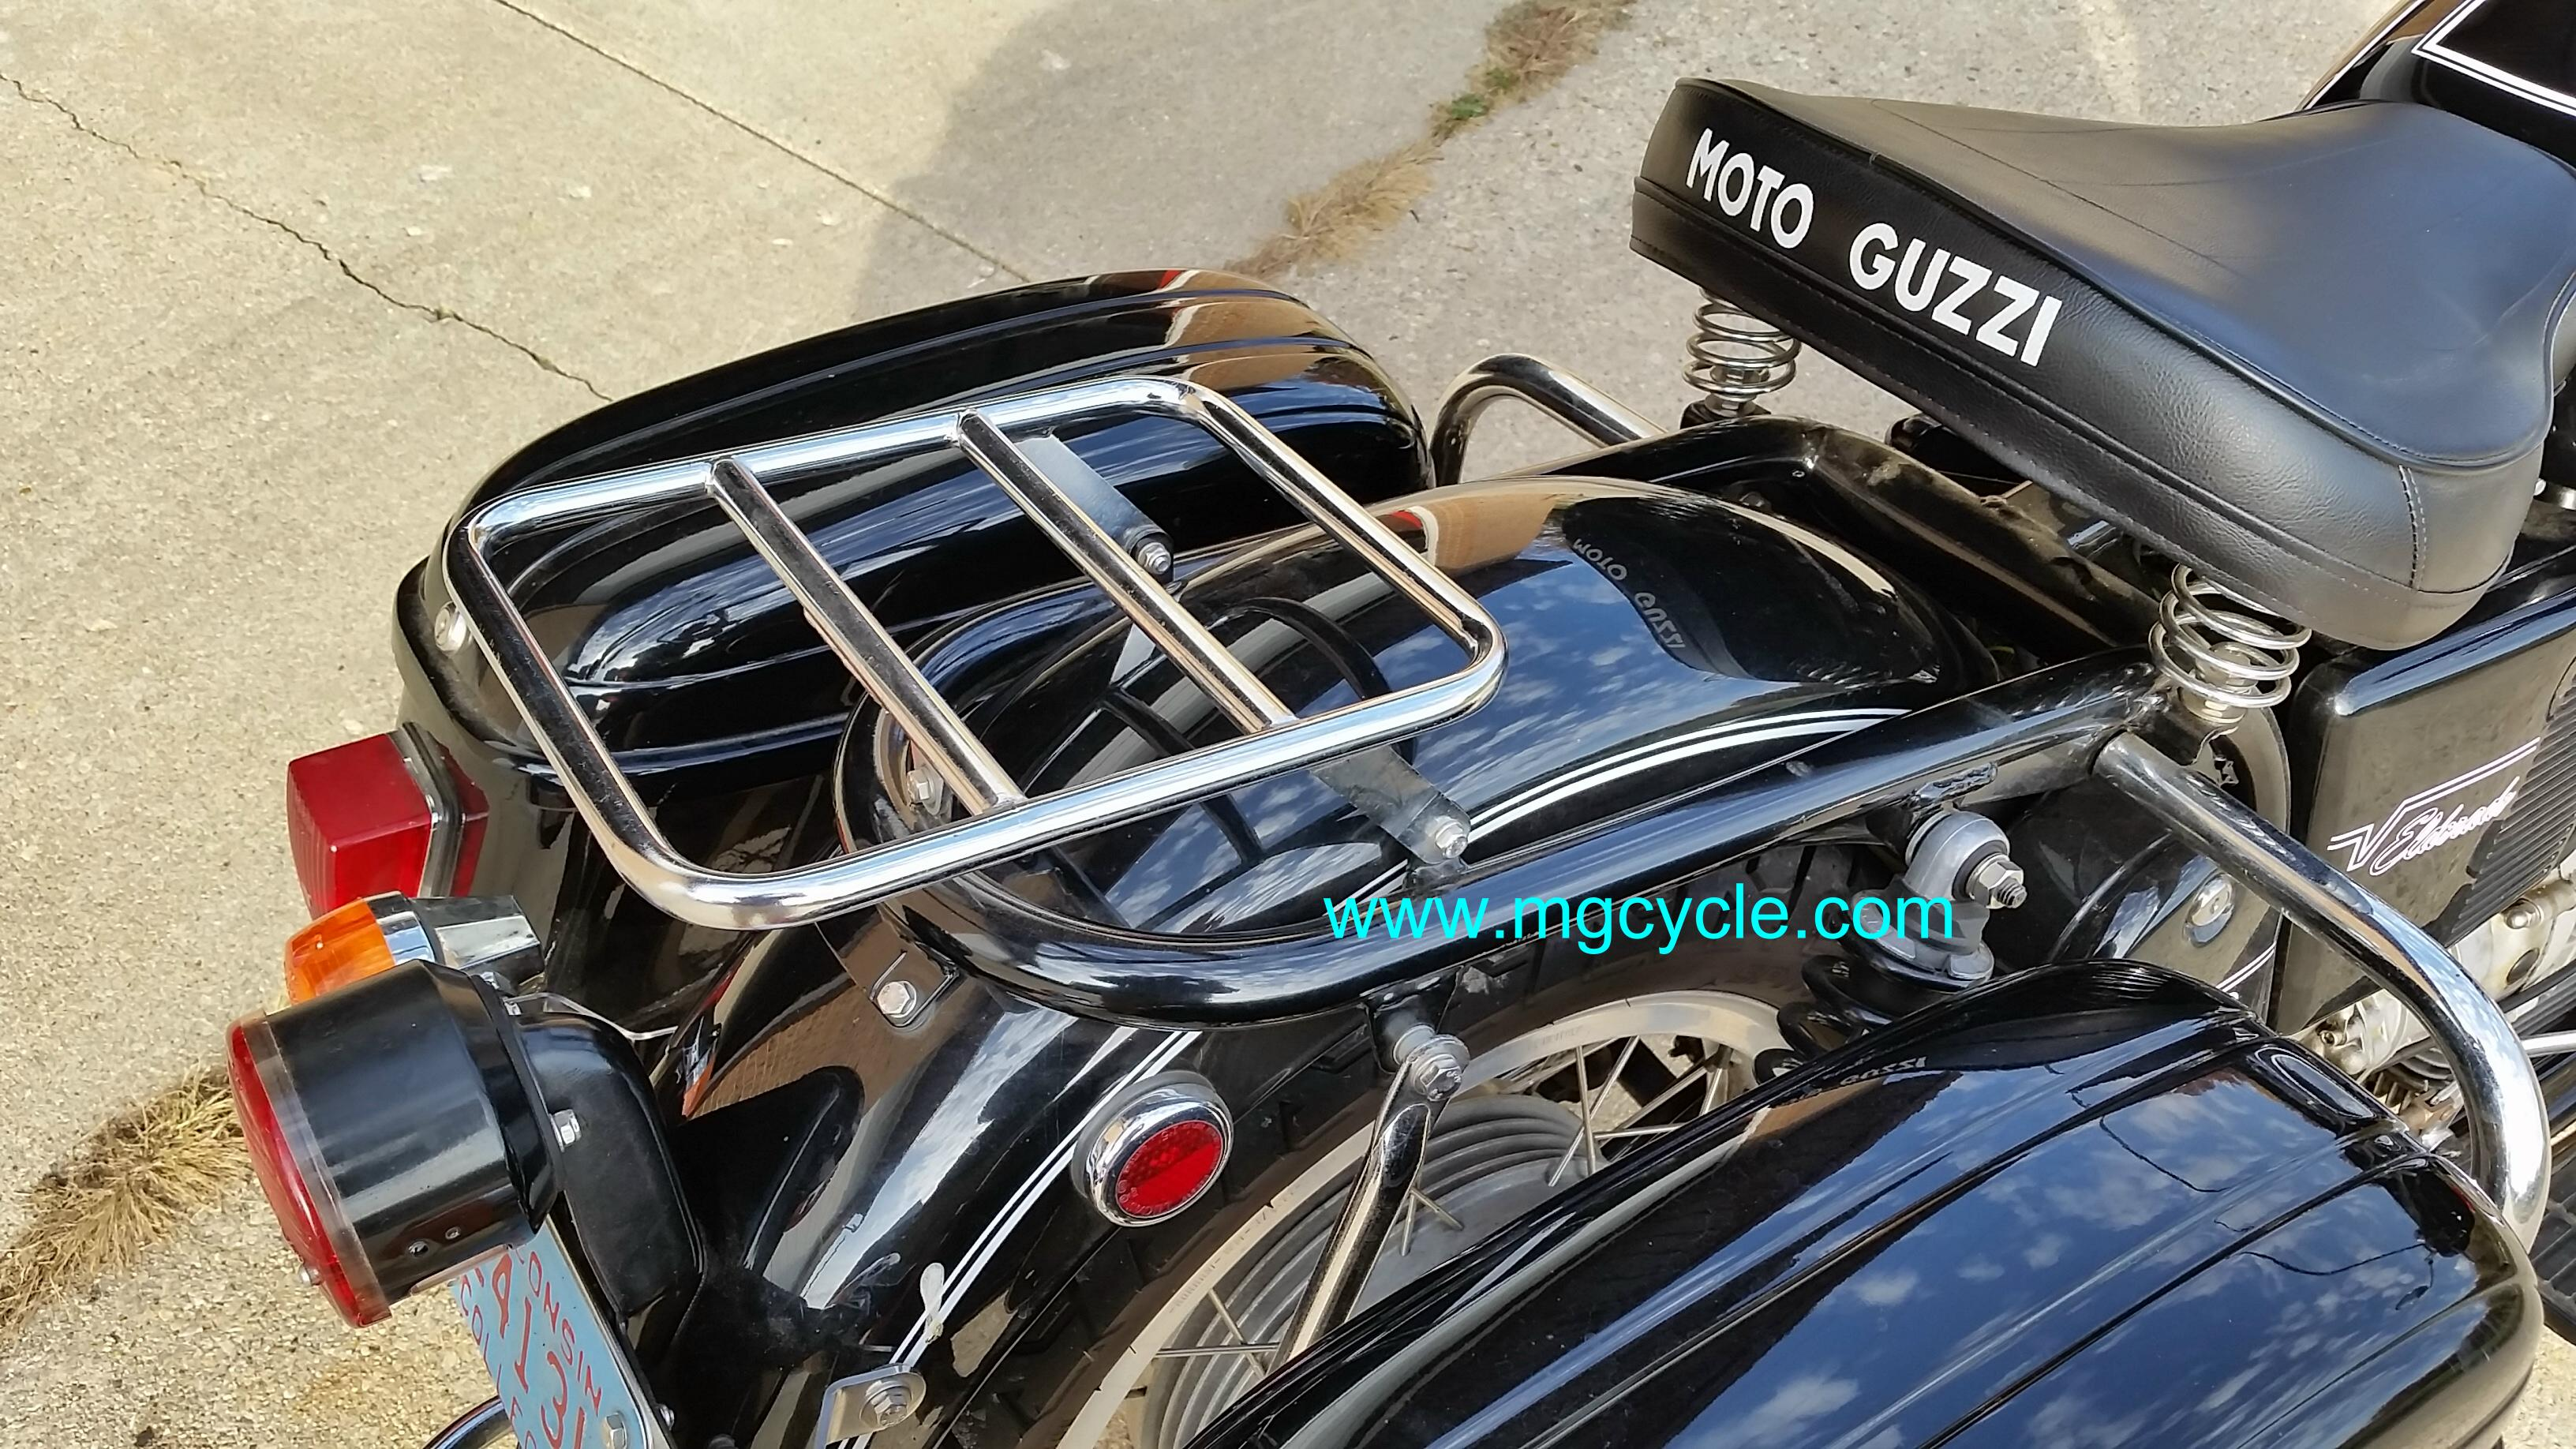 850GT California luggage rack, for solo seat V700 Ambassdor Eldo